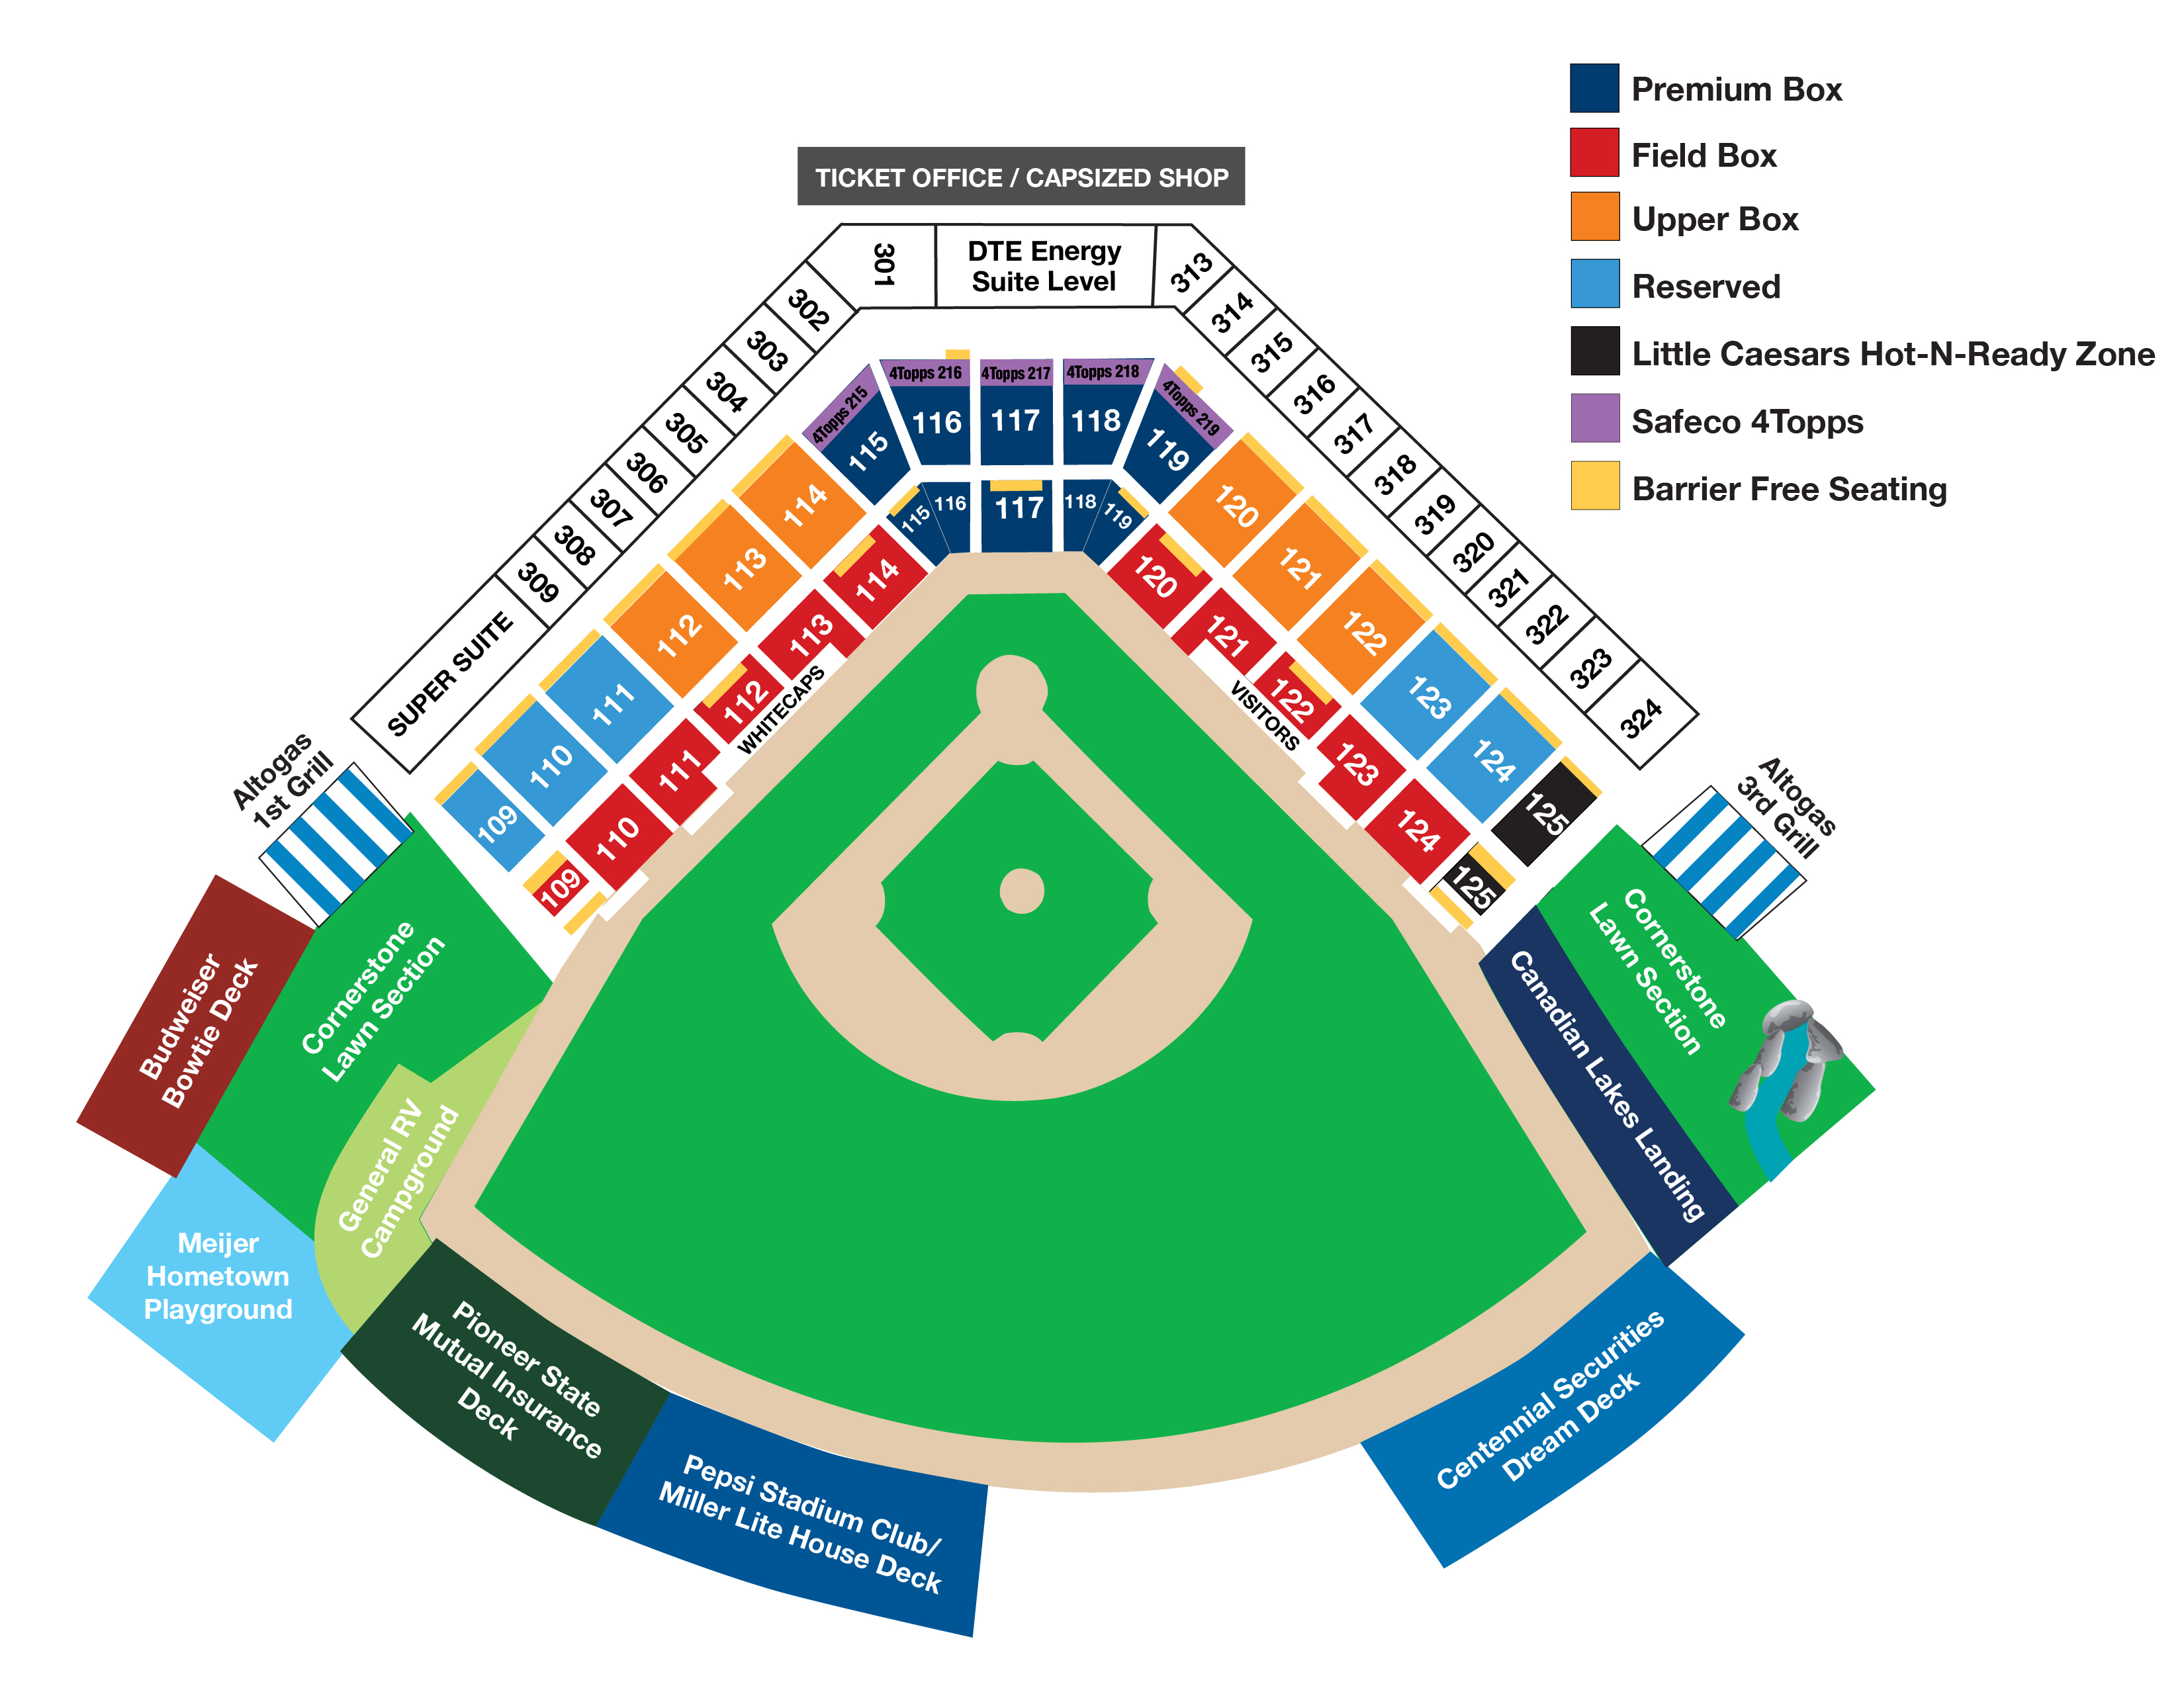 Kauffman Stadium Seating Chart With Rows And Seat Numbers